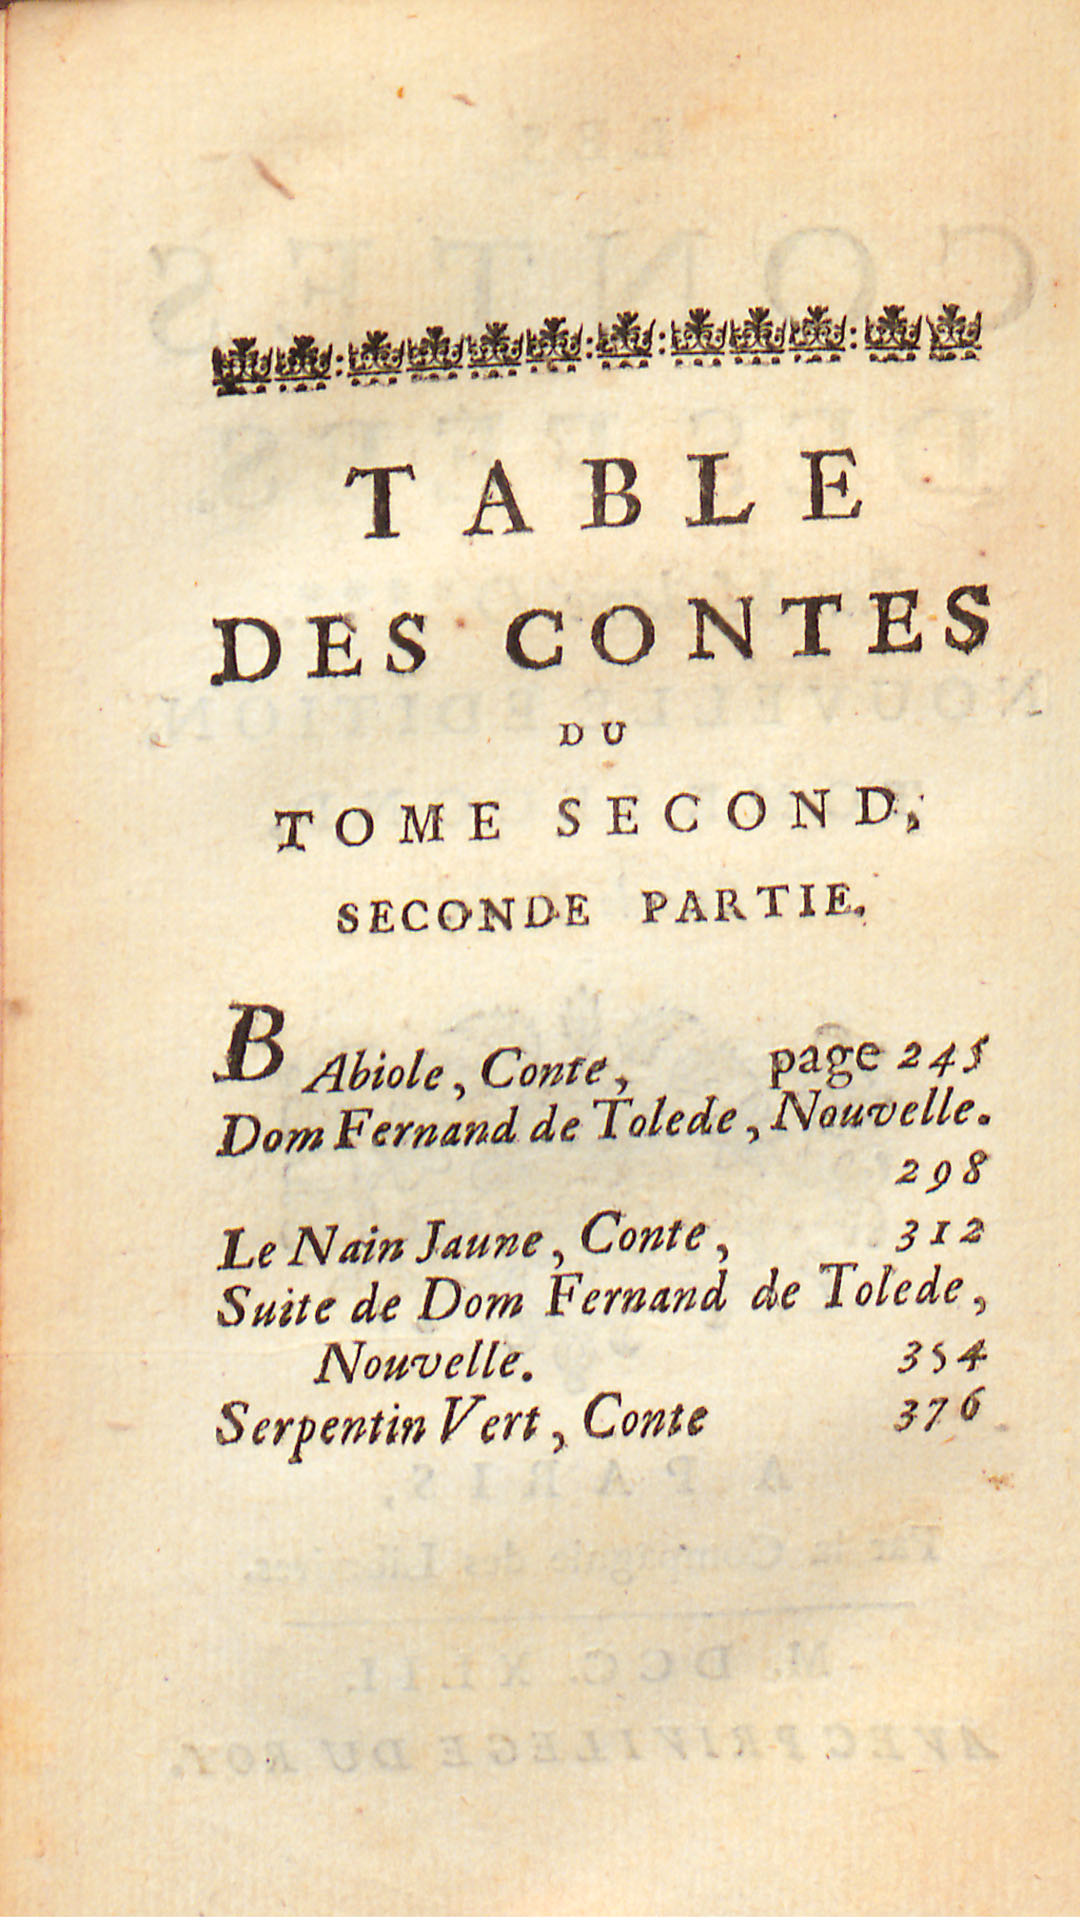 Table des contes, tome second, seconde partie